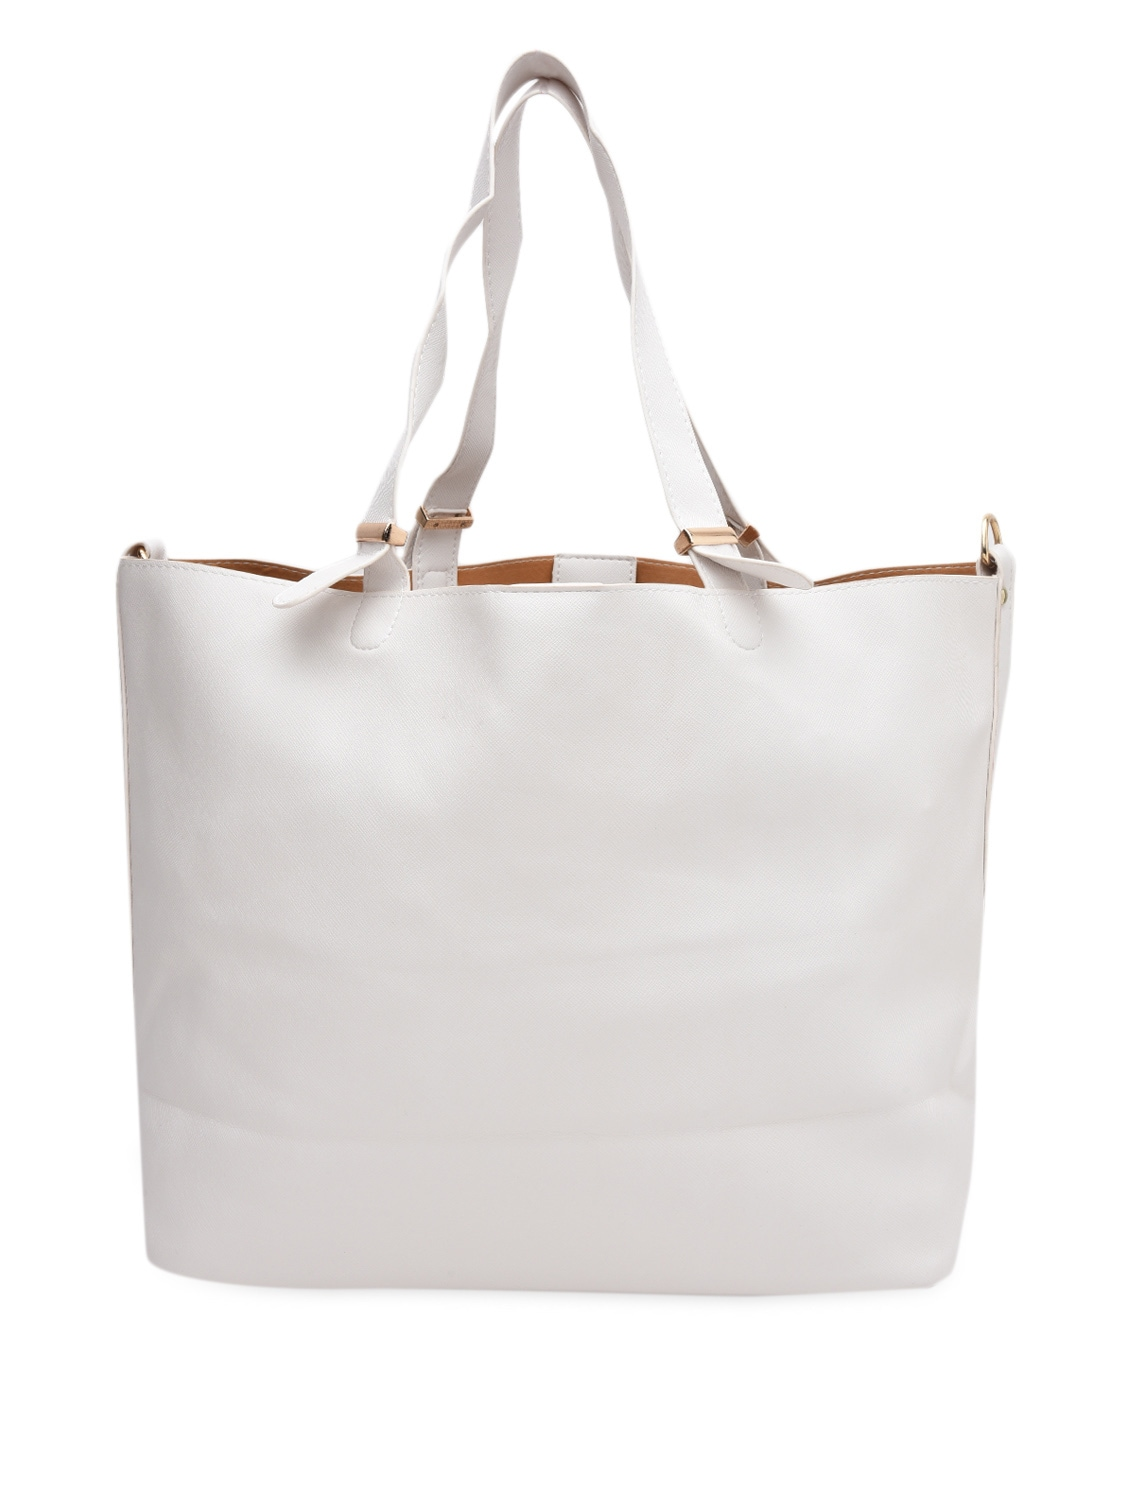 White Faux Leather Tote With Sling Bag - By